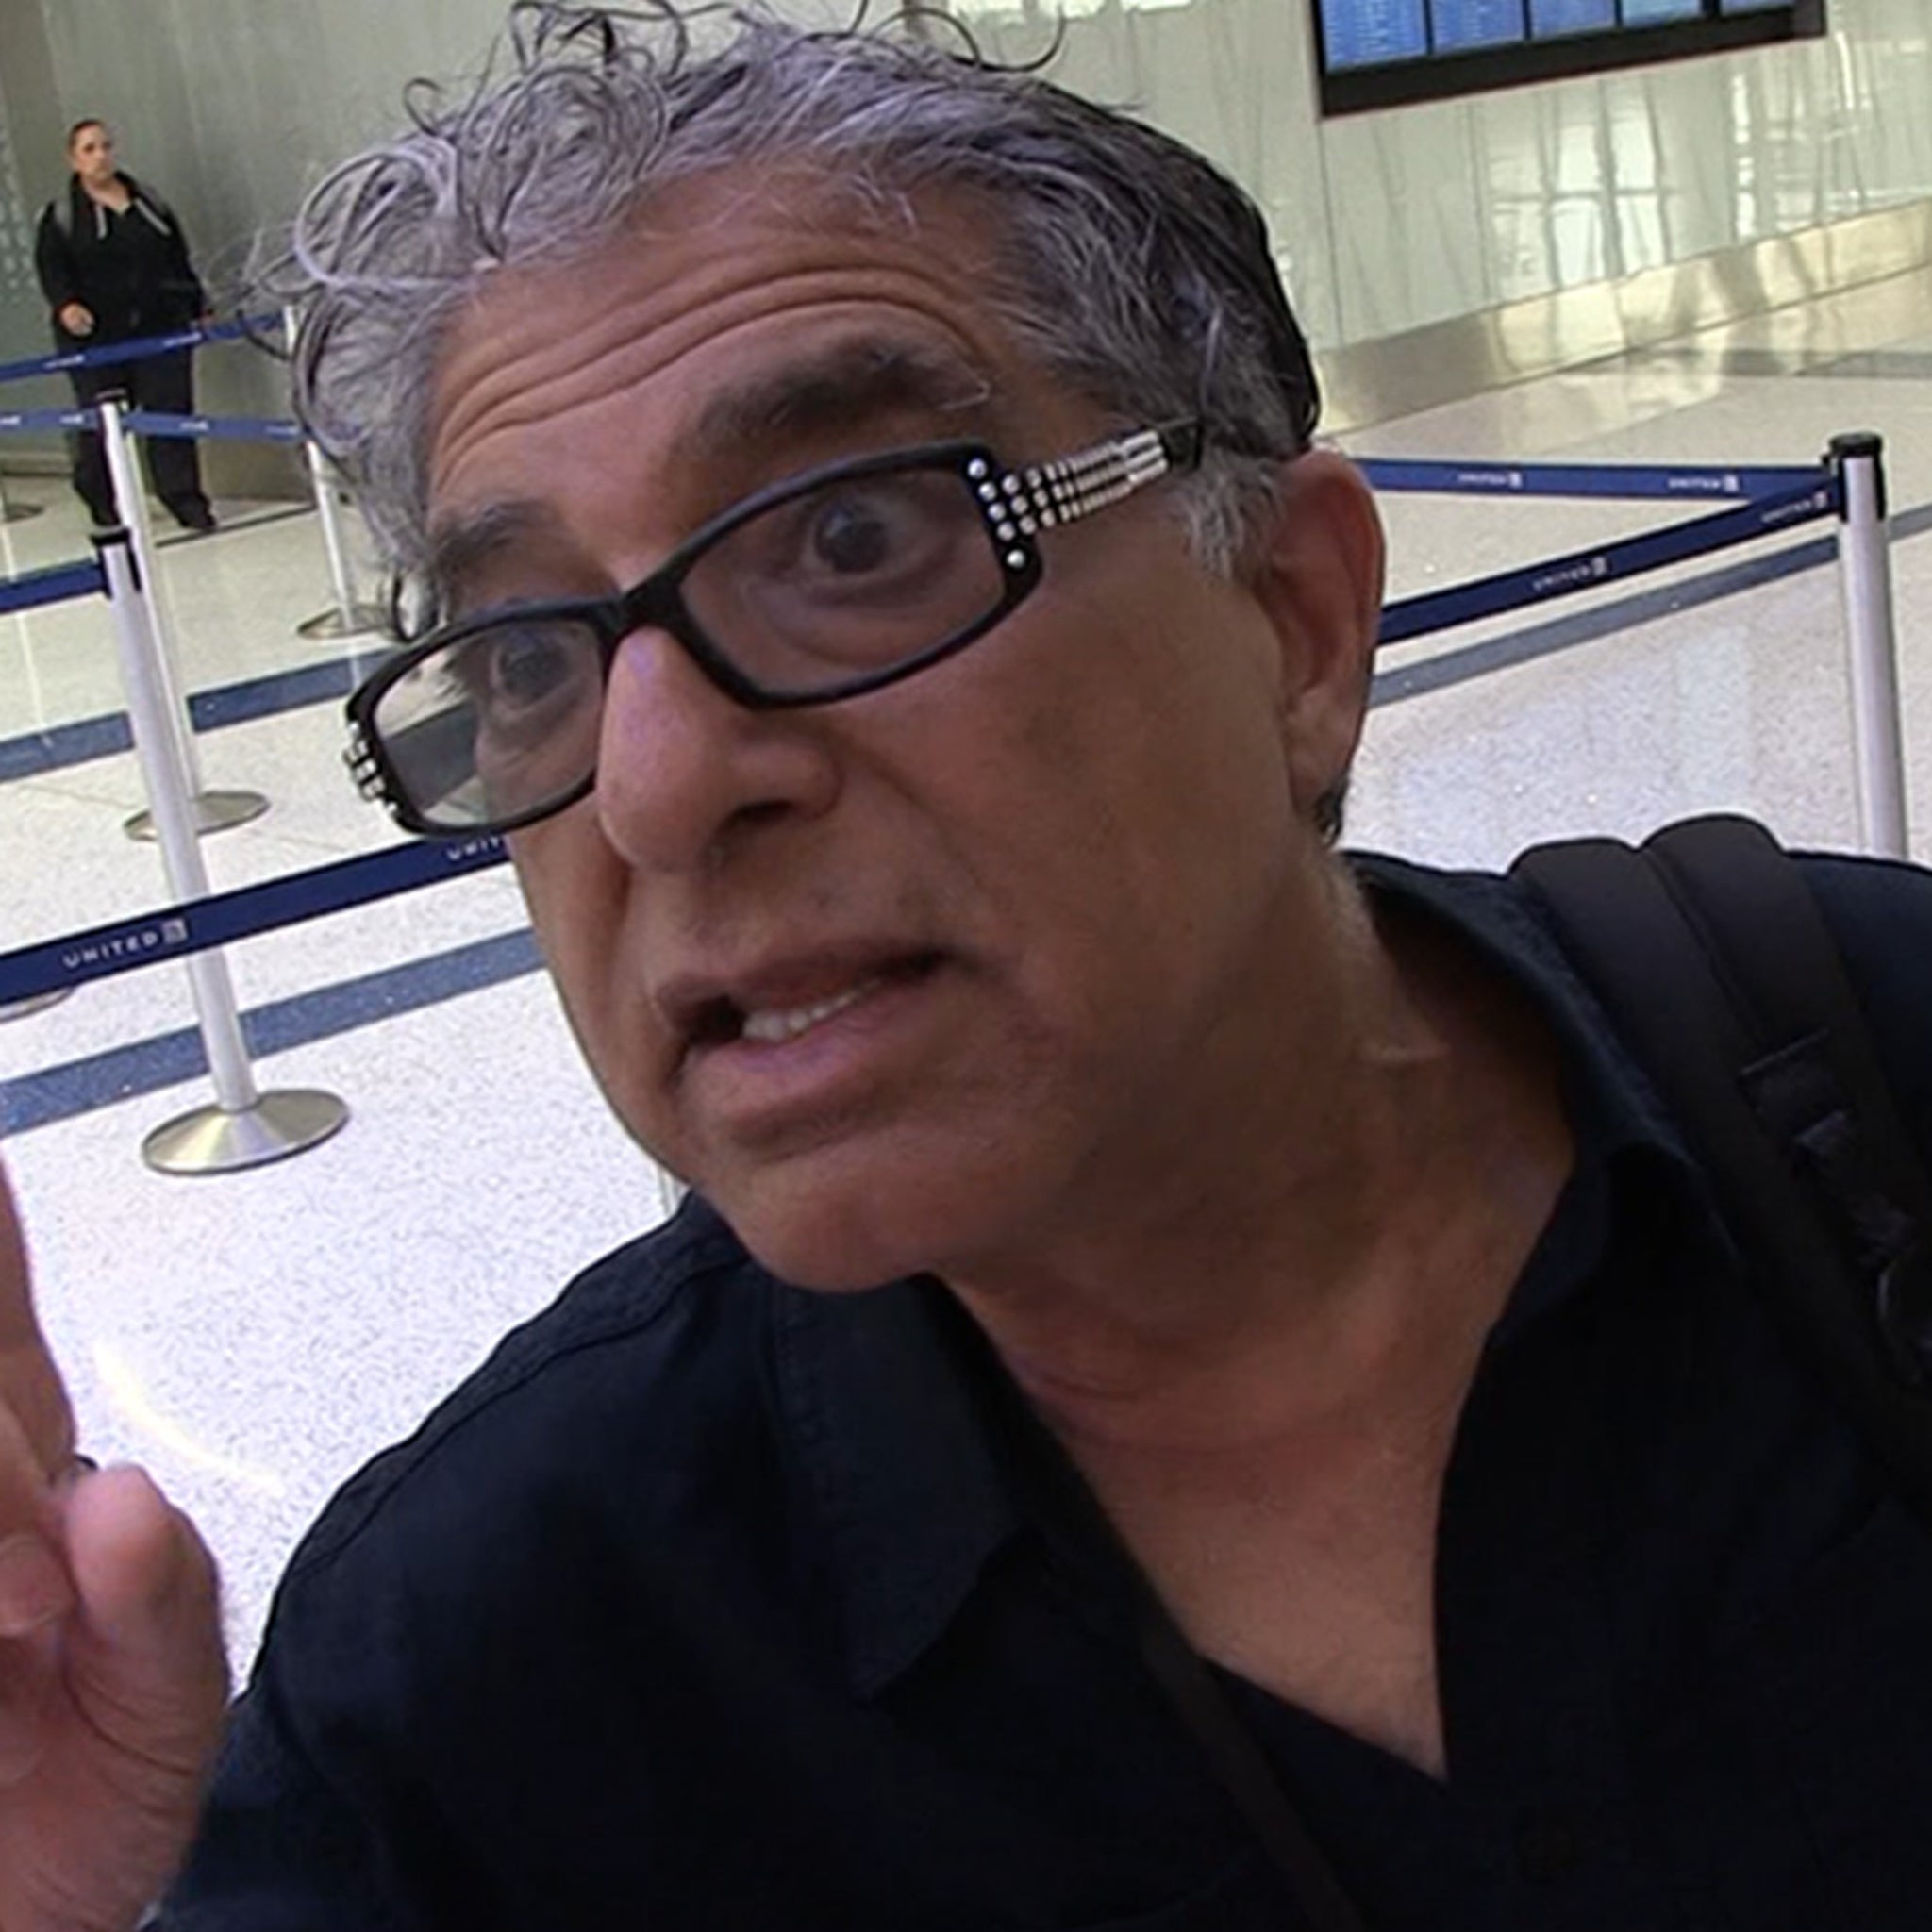 President Trump and Other Leaders Are 'Thugs' says Deepak Chopra